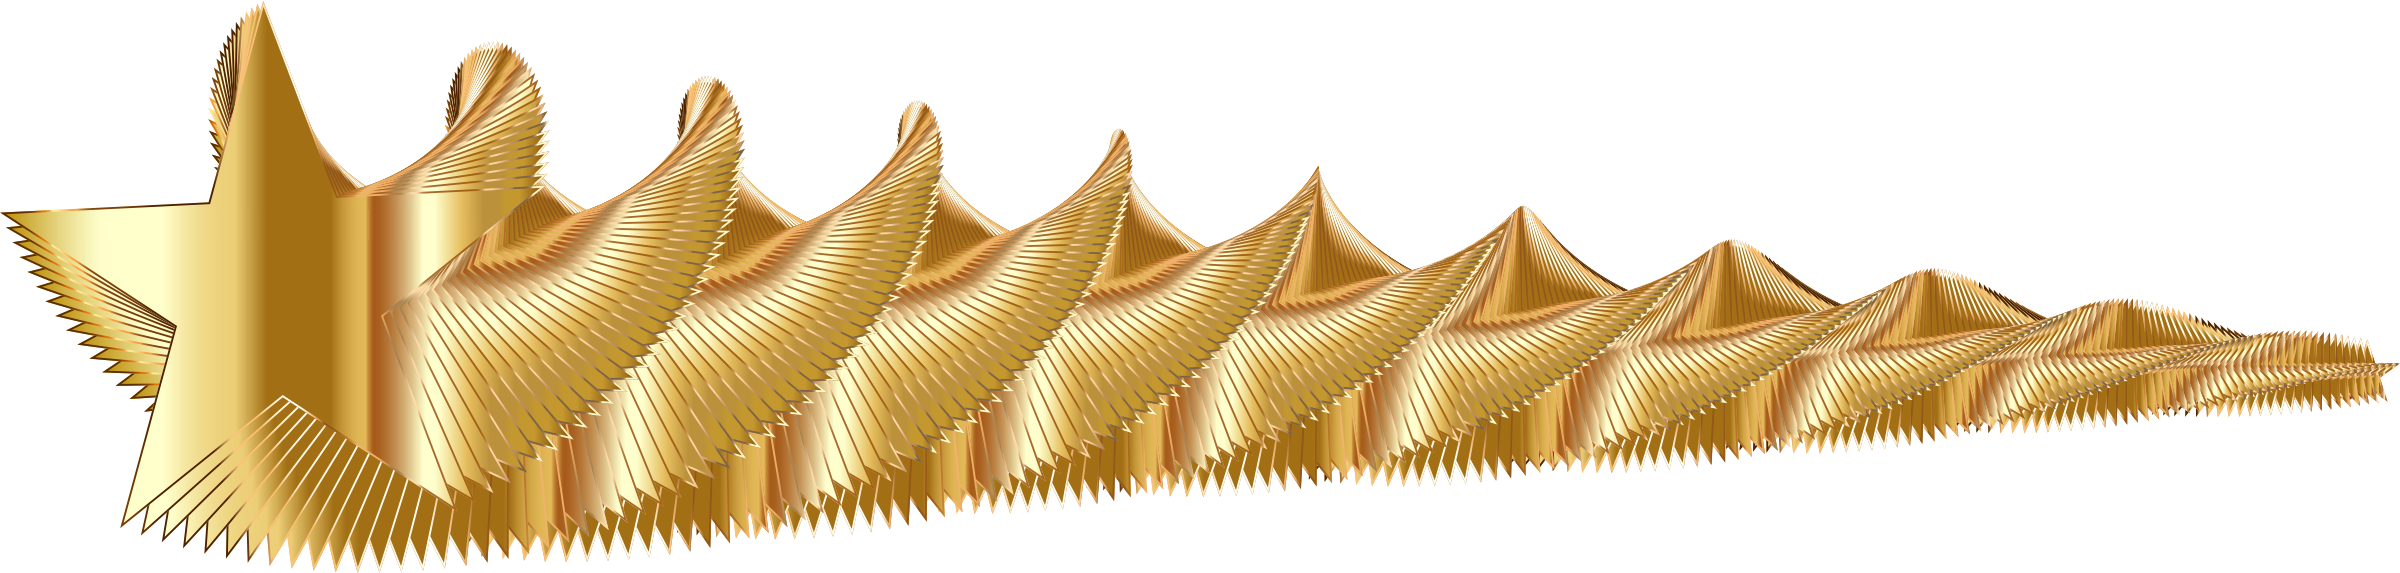 Gold clipart shooting star. Golden big image png